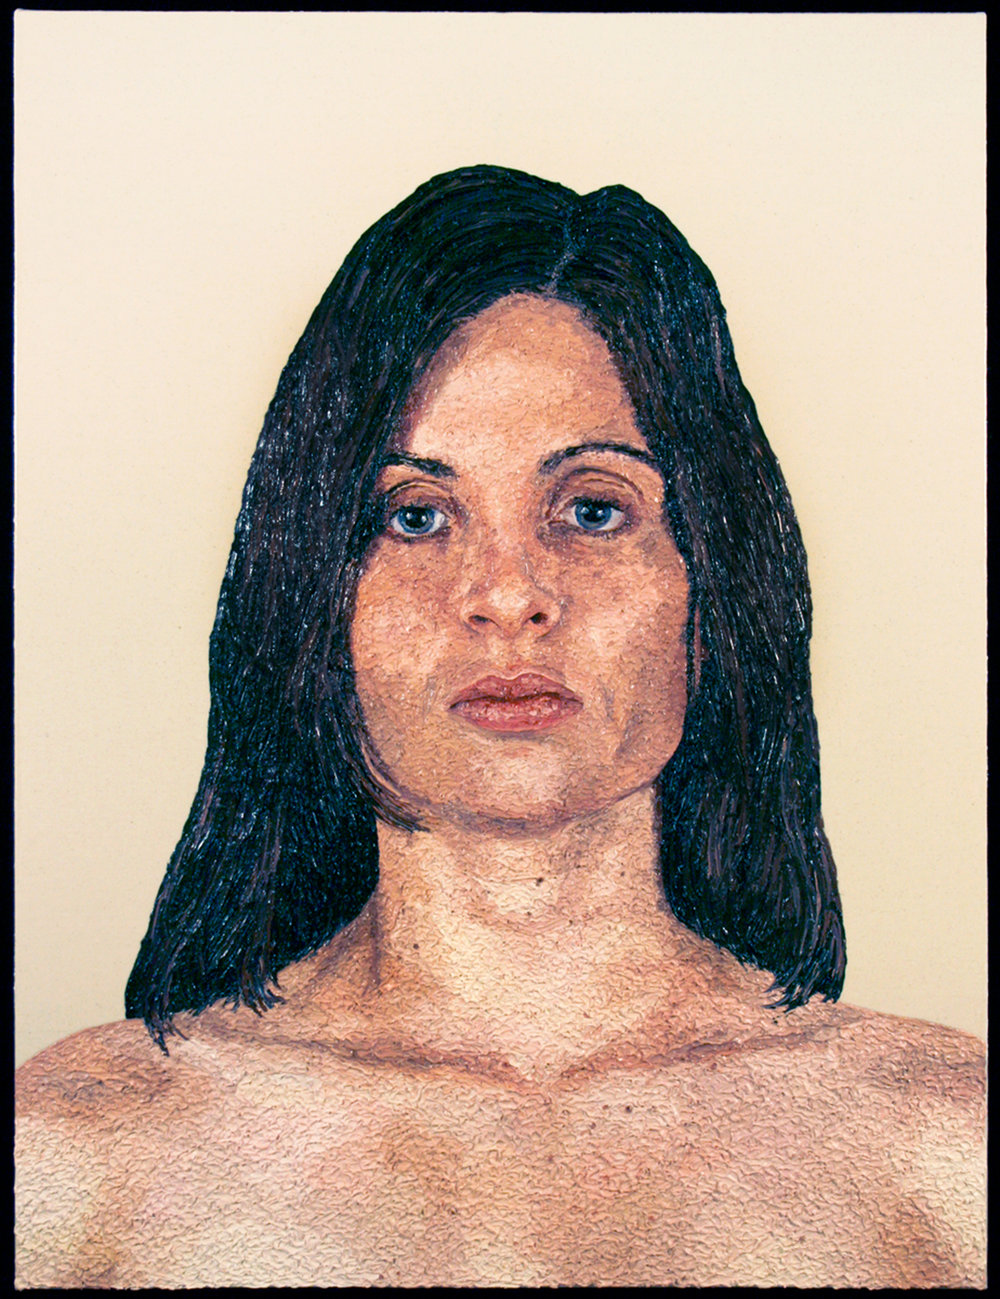 Julie, 2008  |  48 x 36 inches  |  oil and urethane on canvas